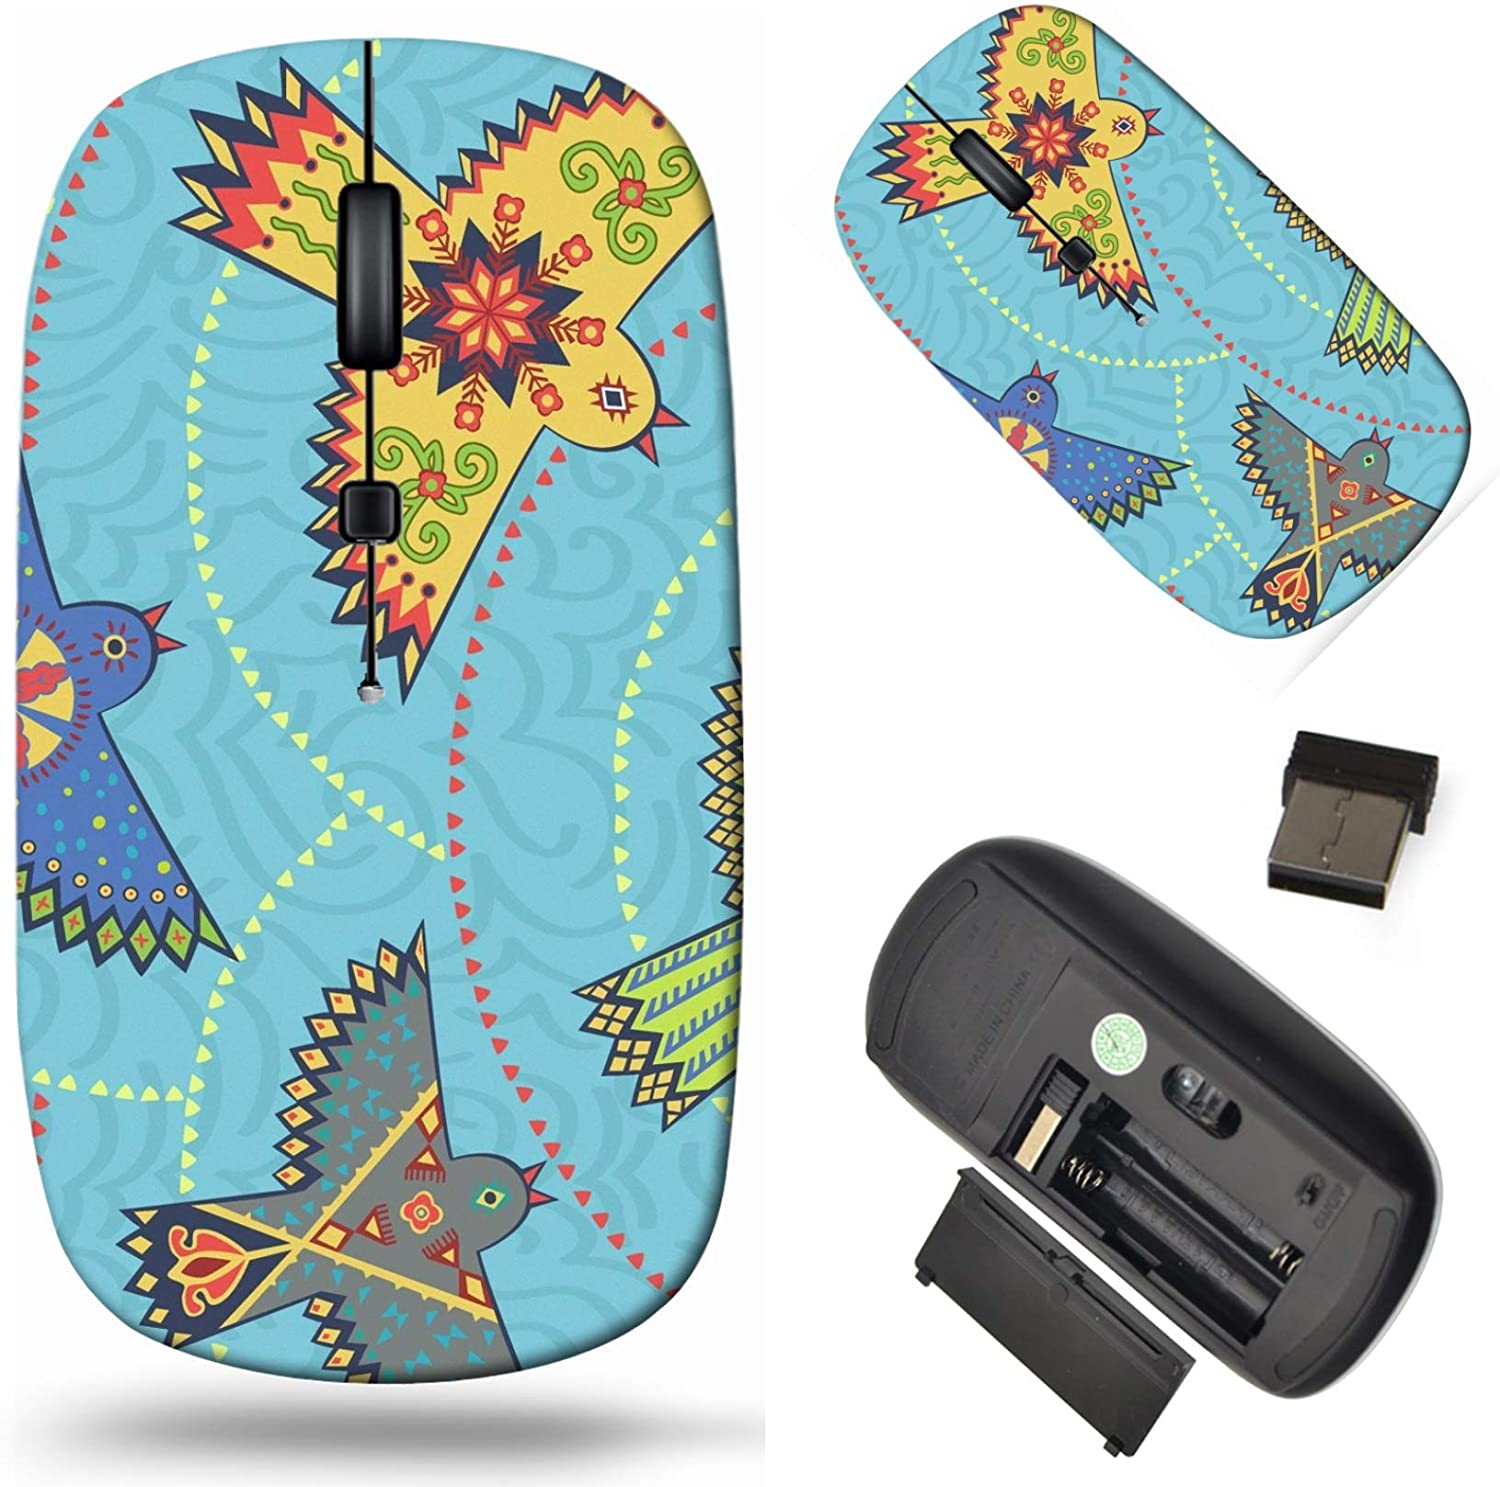 Wireless Computer Mouse Lowest price challenge 2.4G with Recommended USB Laptop Receiver Cor